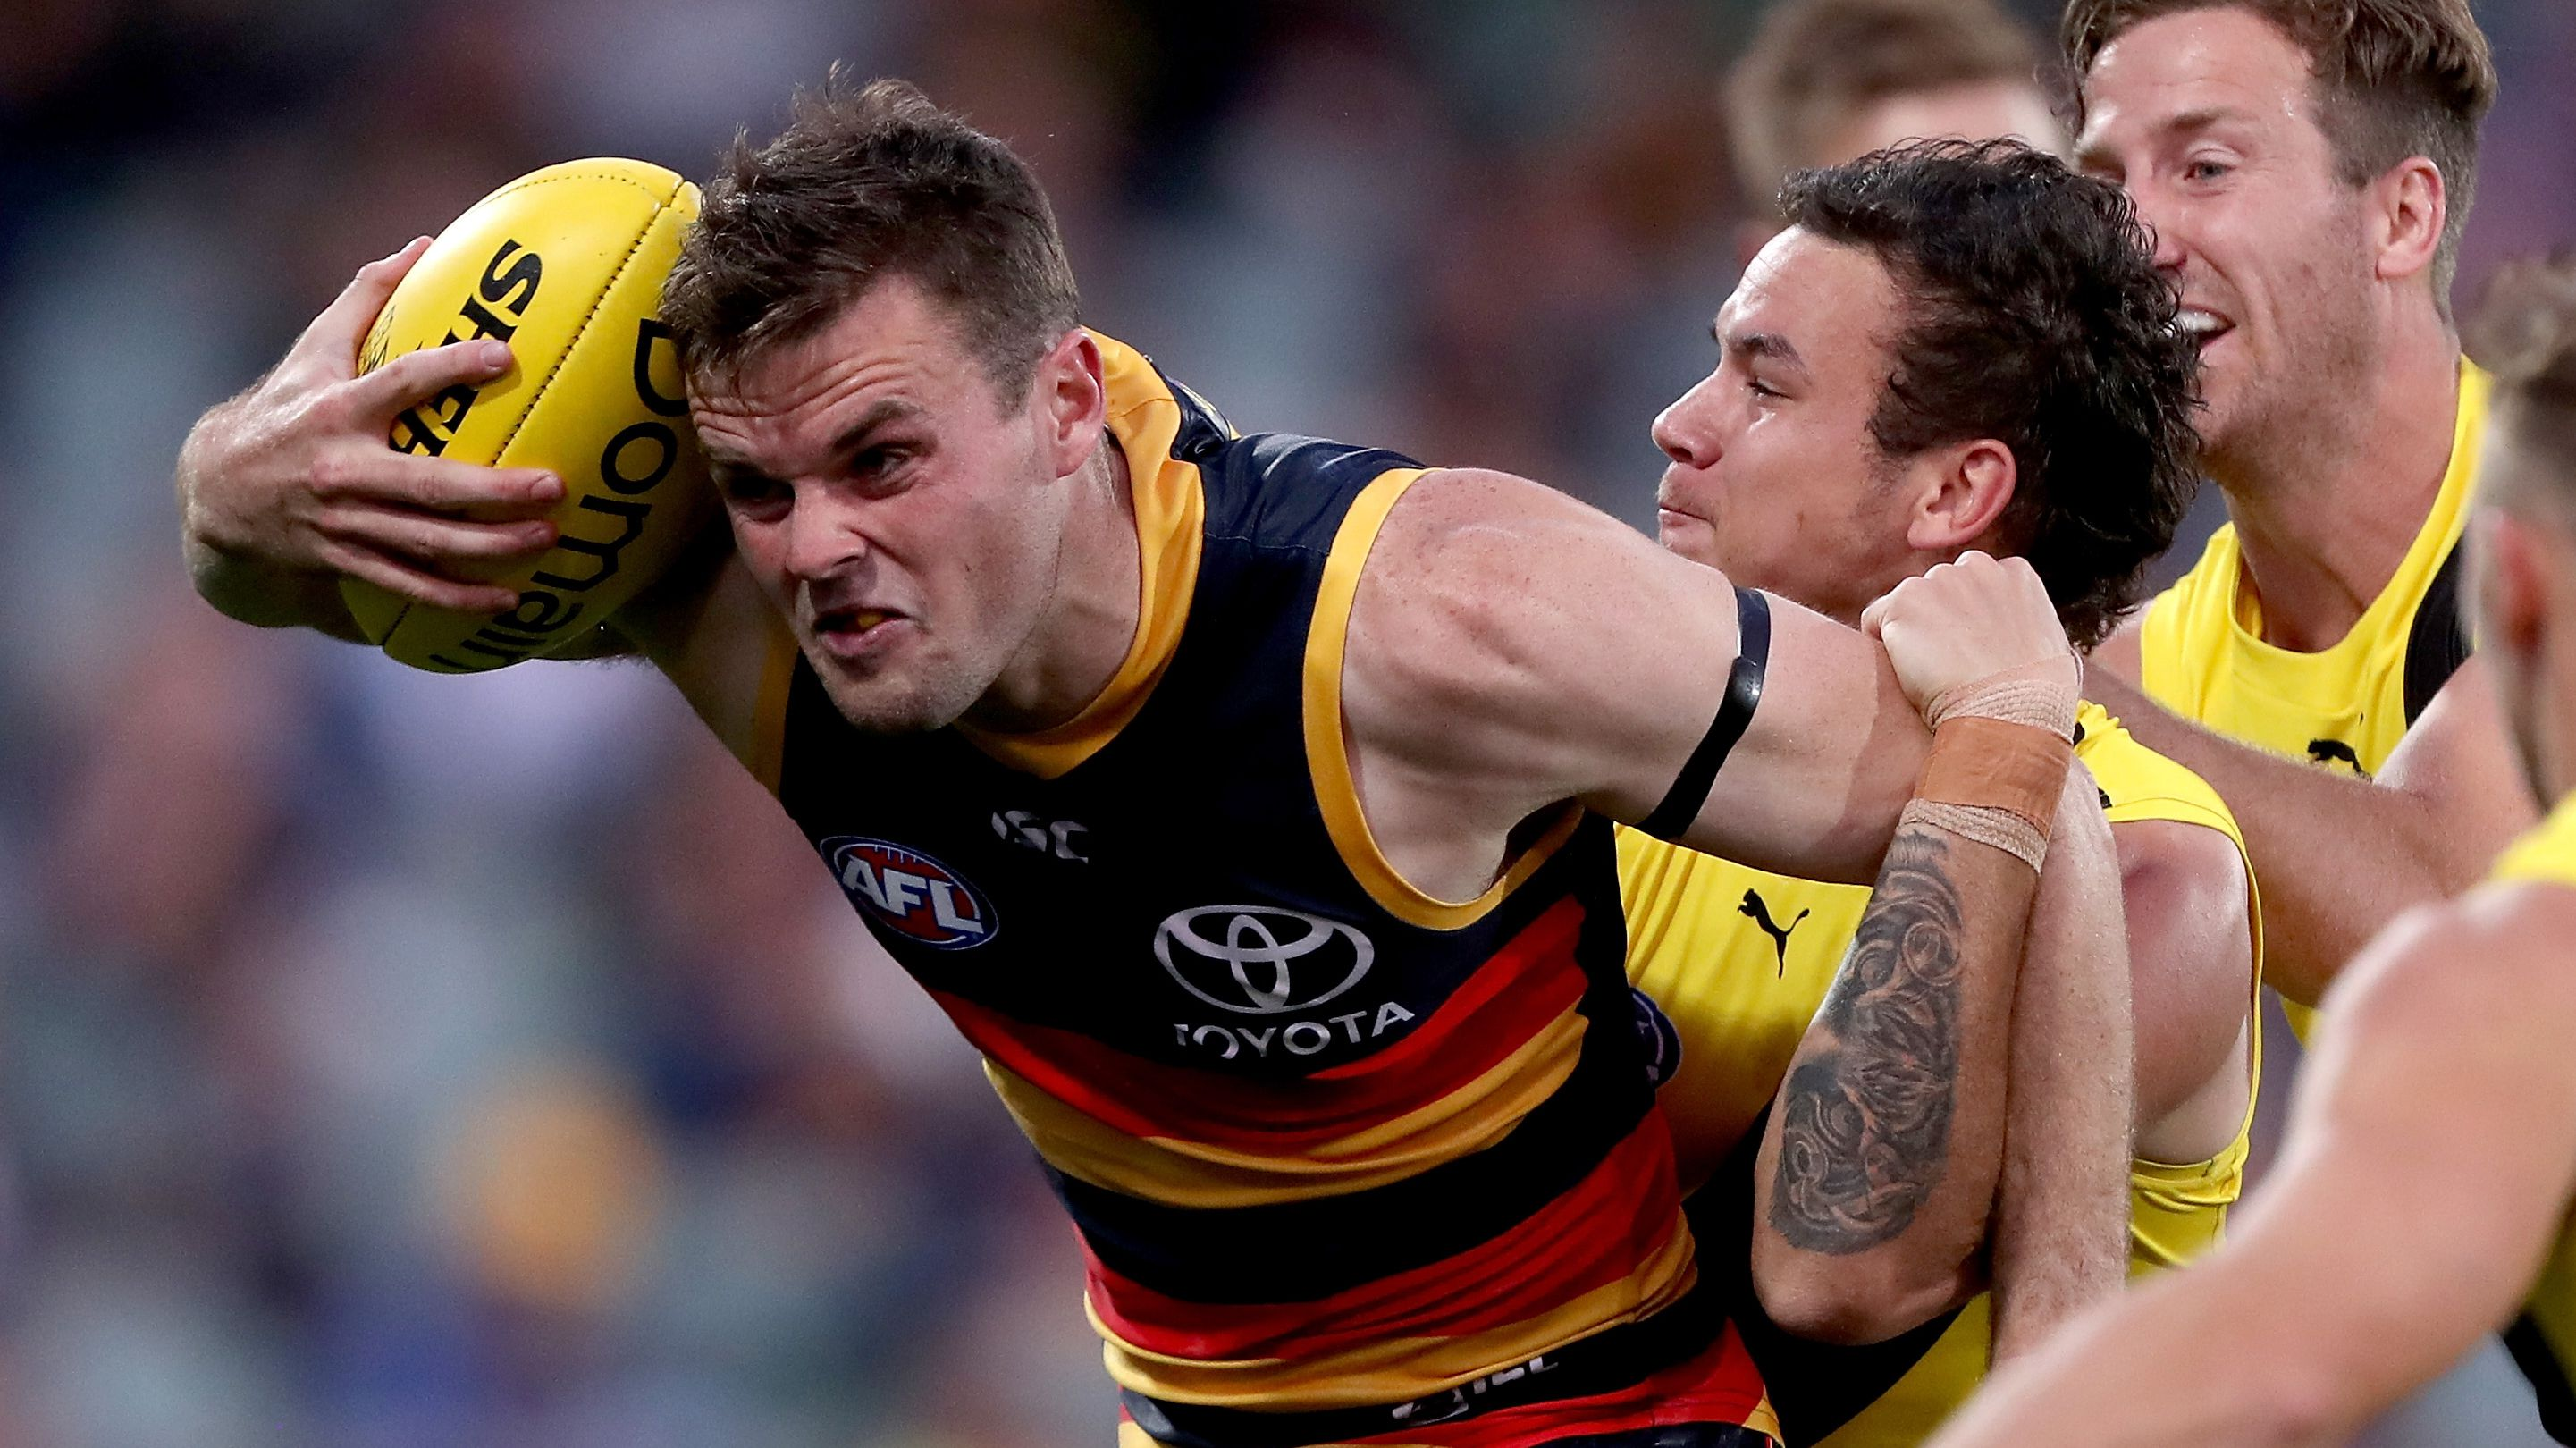 'Gutted' Adelaide Crows to put Brad Crouch contract talks on hold amid illicit substance probe